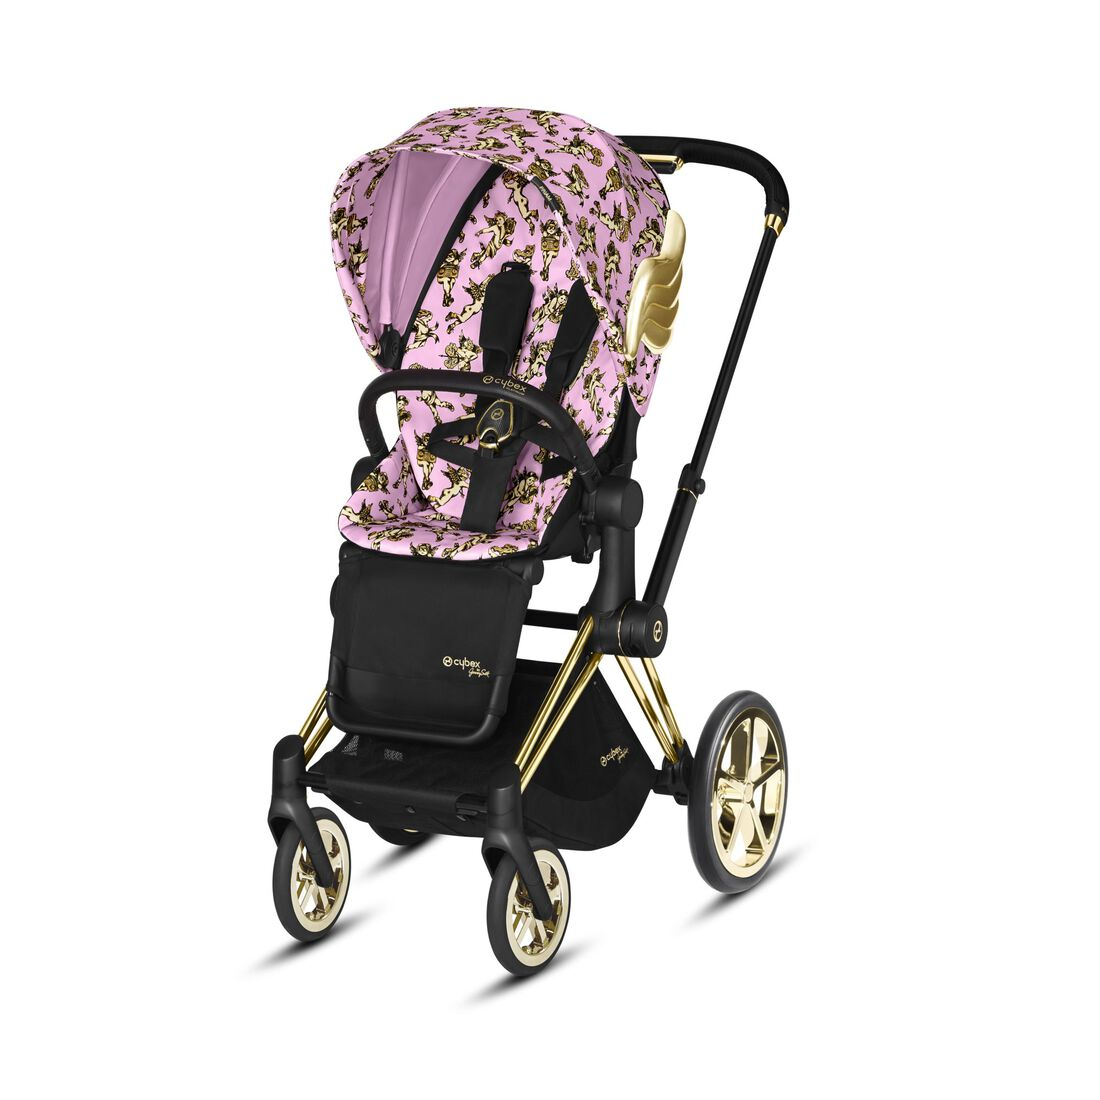 CYBEX Priam Jeremy Scott - Cherubs Pink in Cherubs Pink large Bild 1